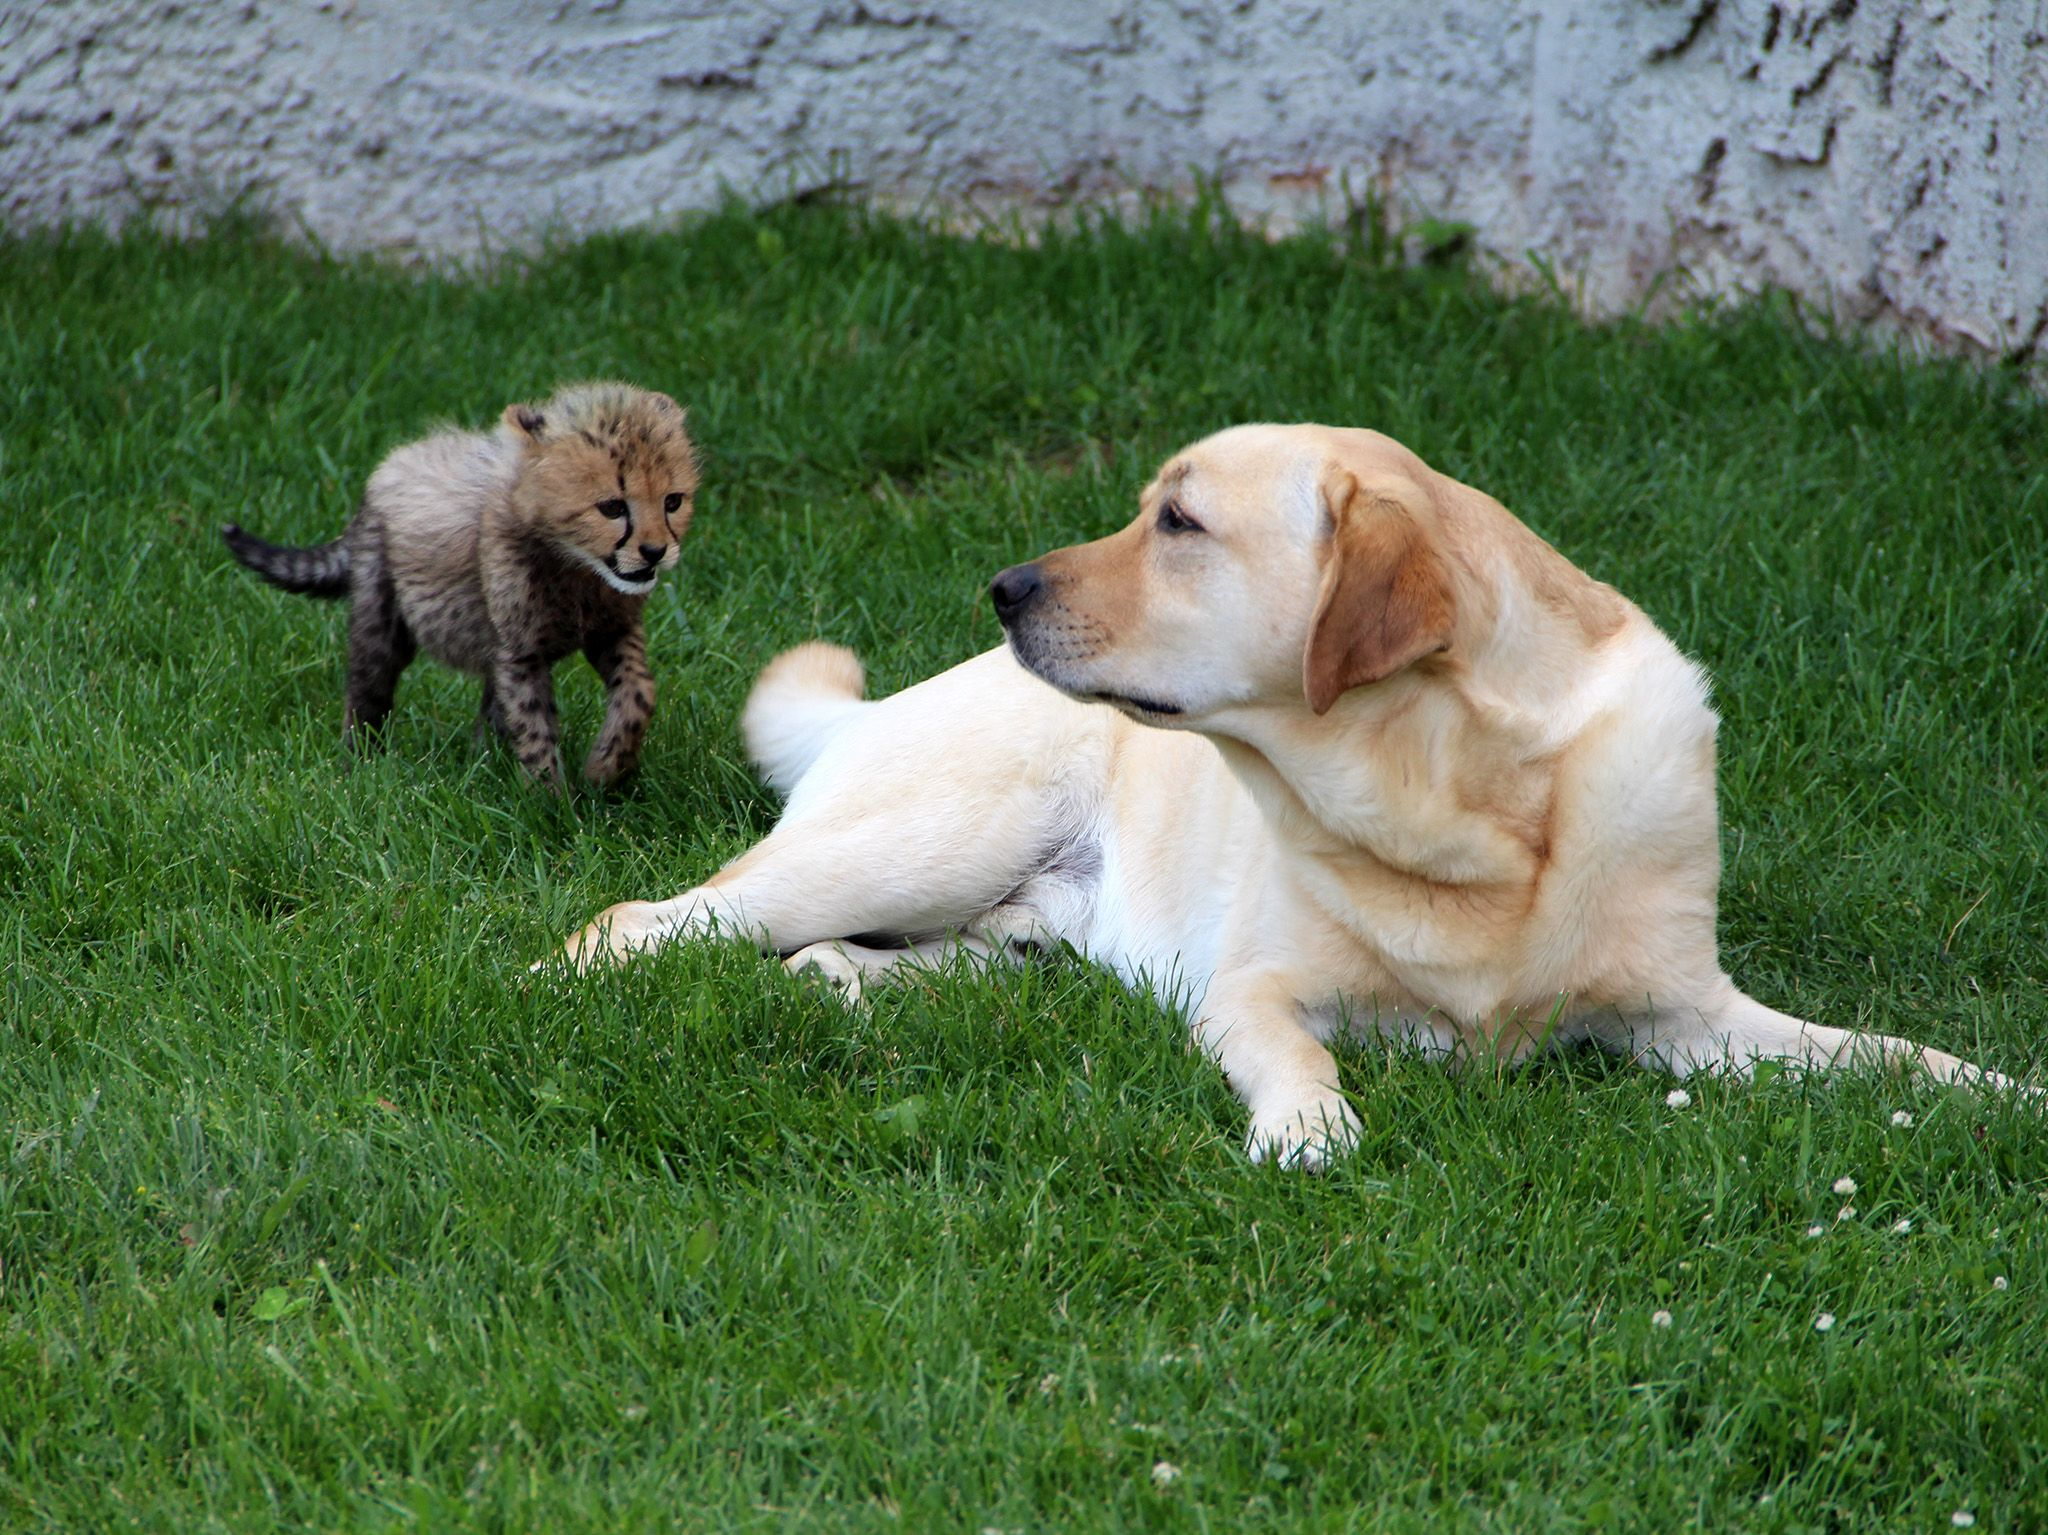 Powell, OH:  Debbie the cheetah cub sneaks up behind Colby the golden retriever in the yard. ... [Photo of the day - July 2019]